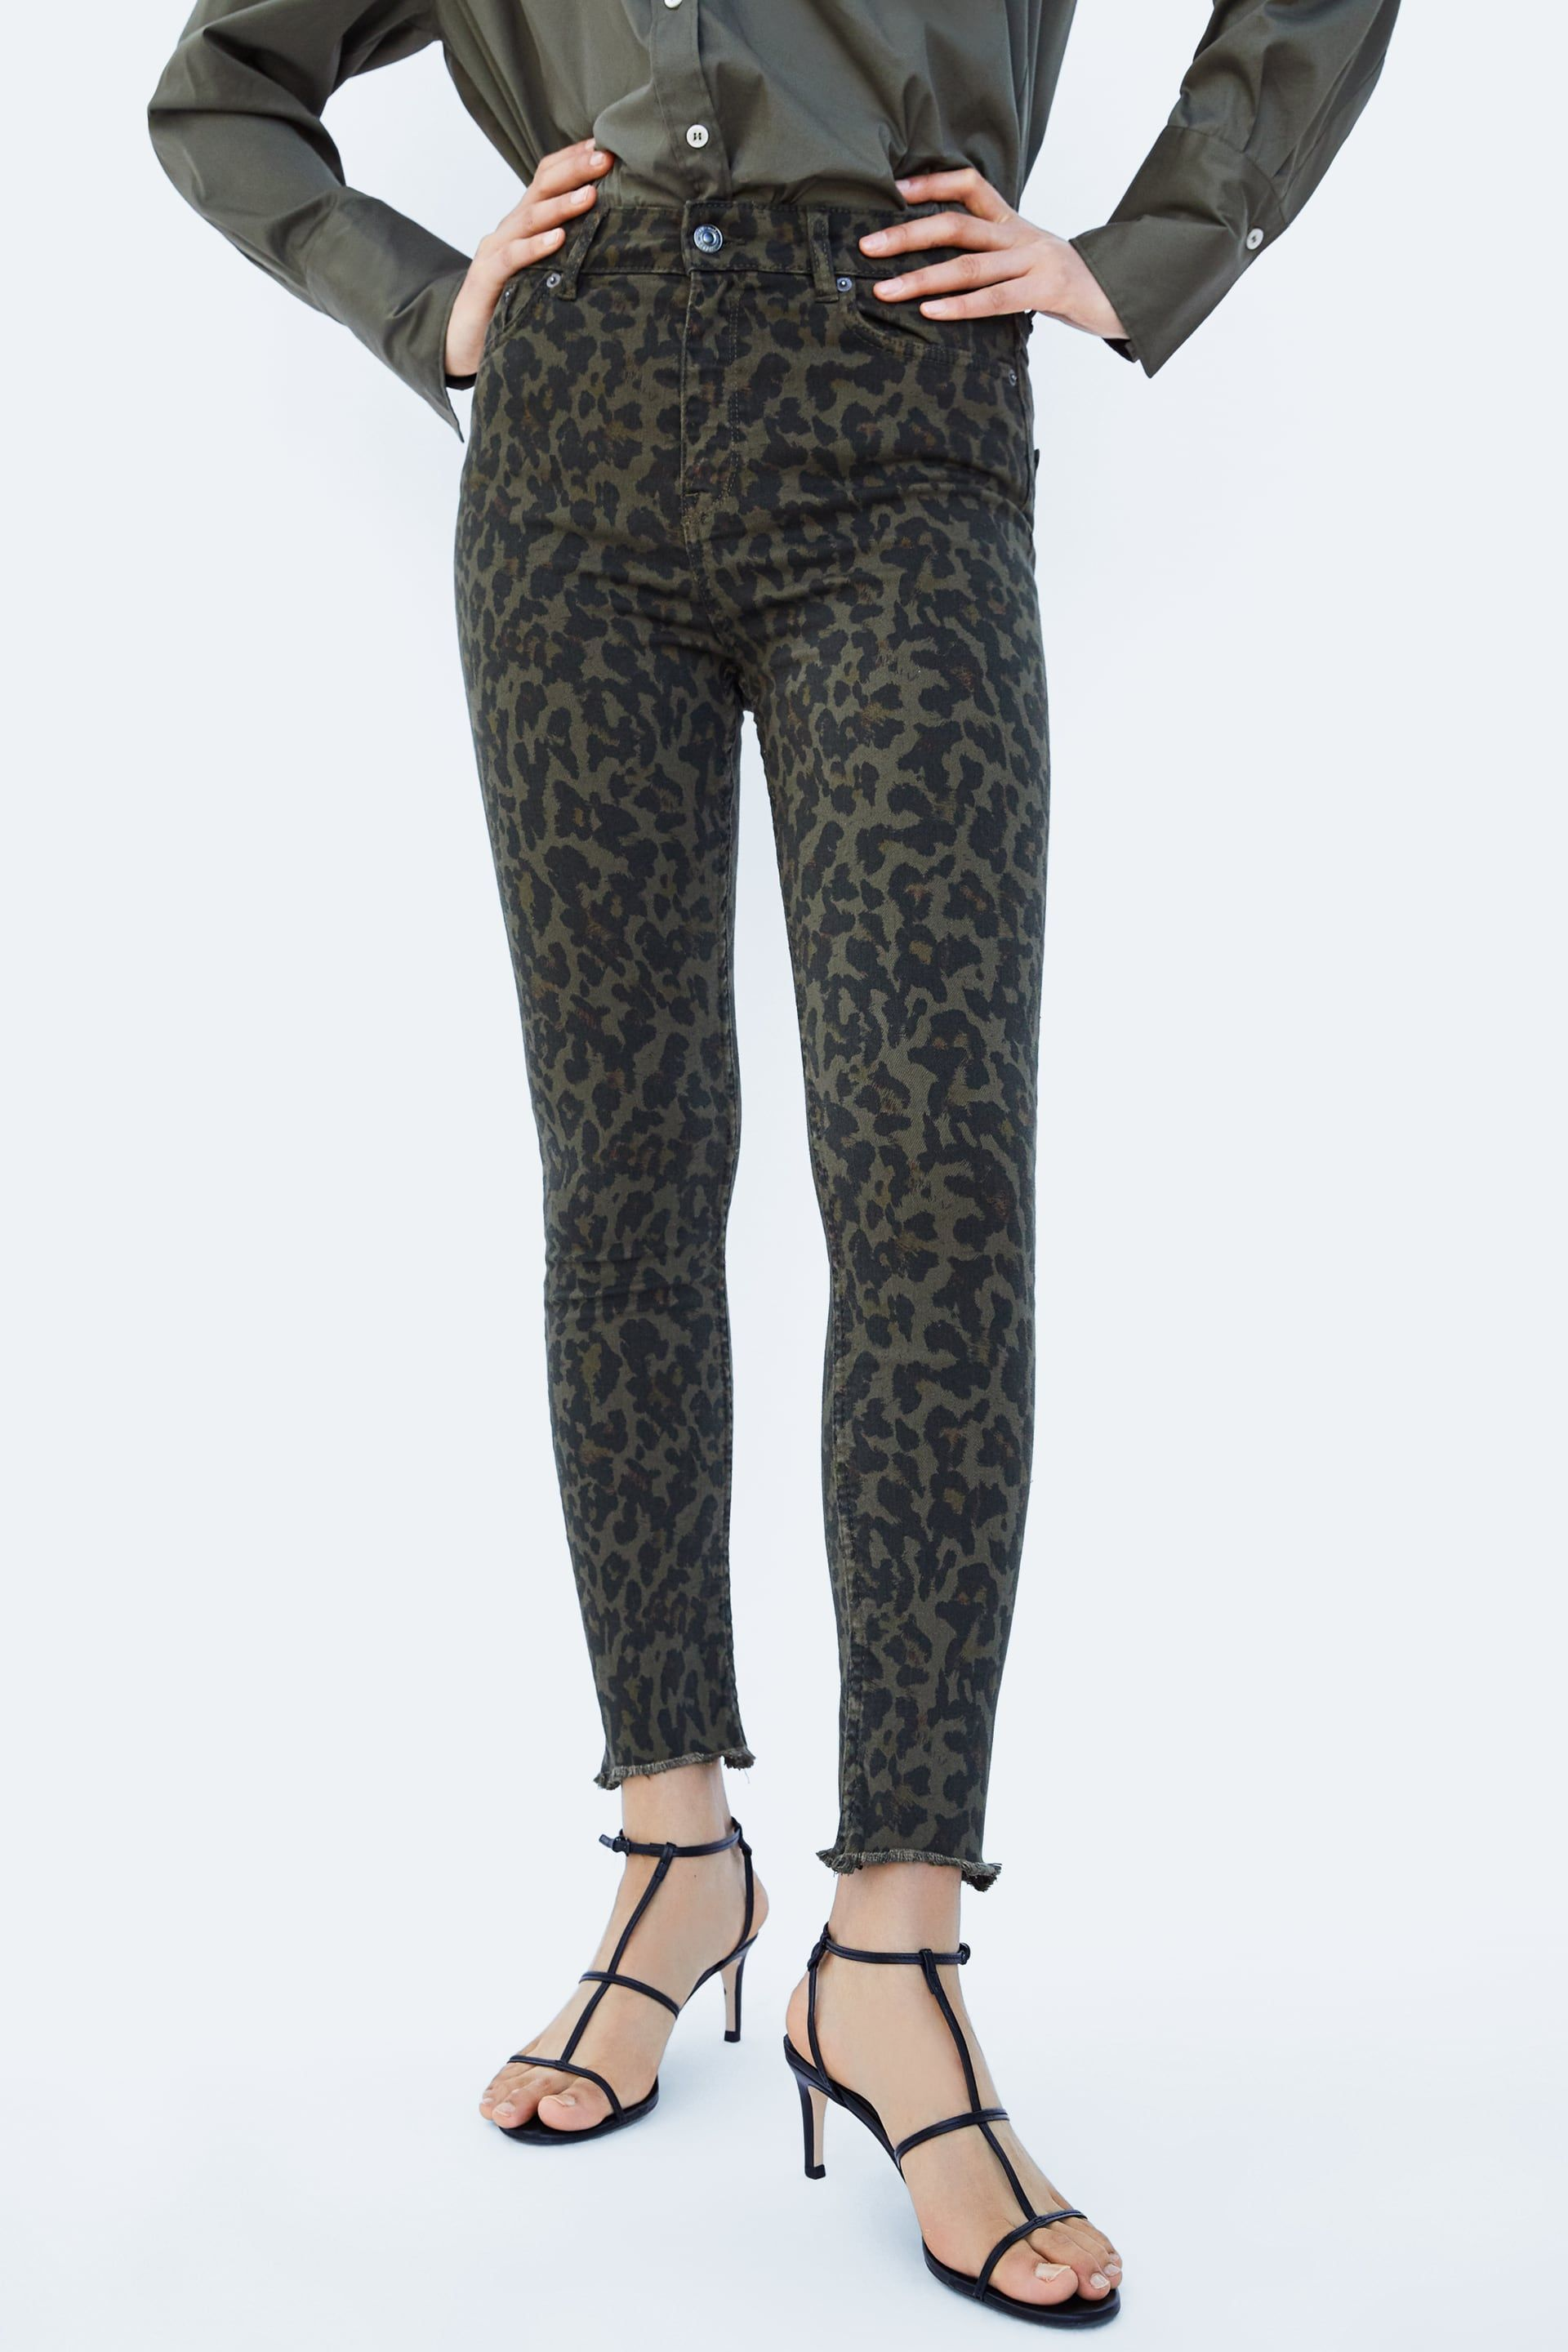 02f24ca2 Image 2 of HIGH-WAISTED PREMIUM ZW LEOPARD PRINT JEANS from Zara ...